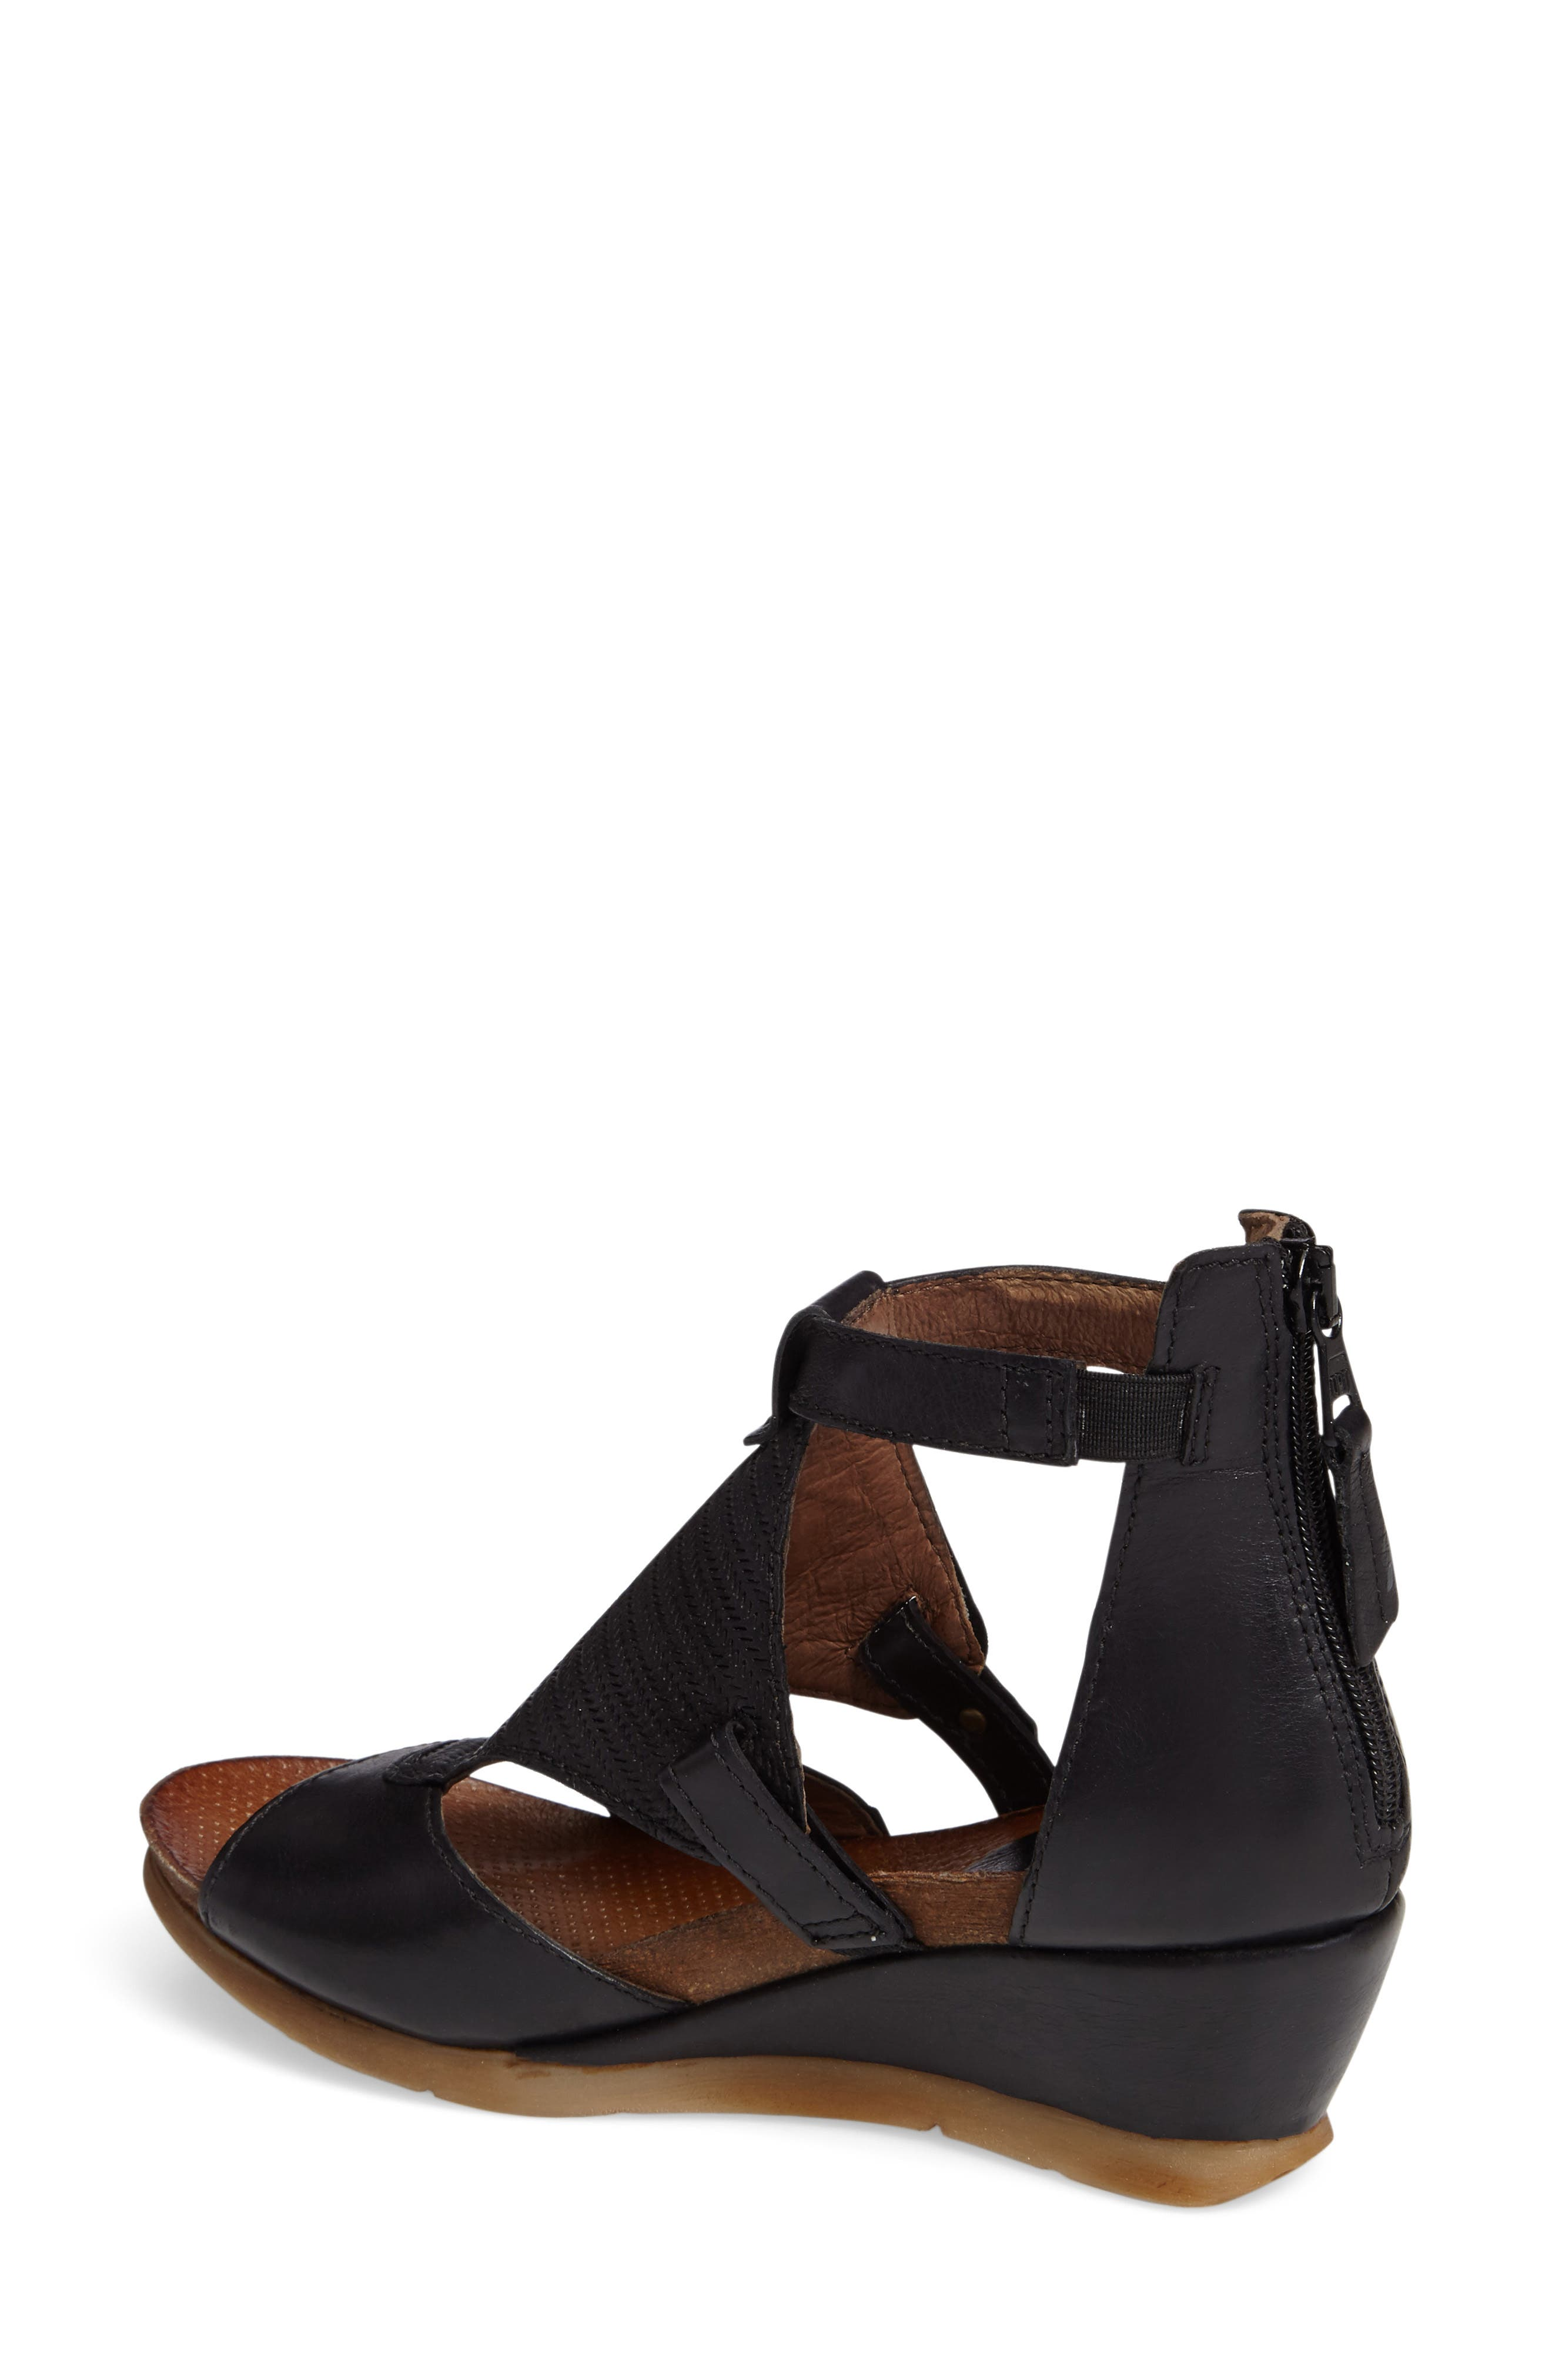 Alternate Image 2  - Miz Mooz Maisie Wedge Sandal (Women)